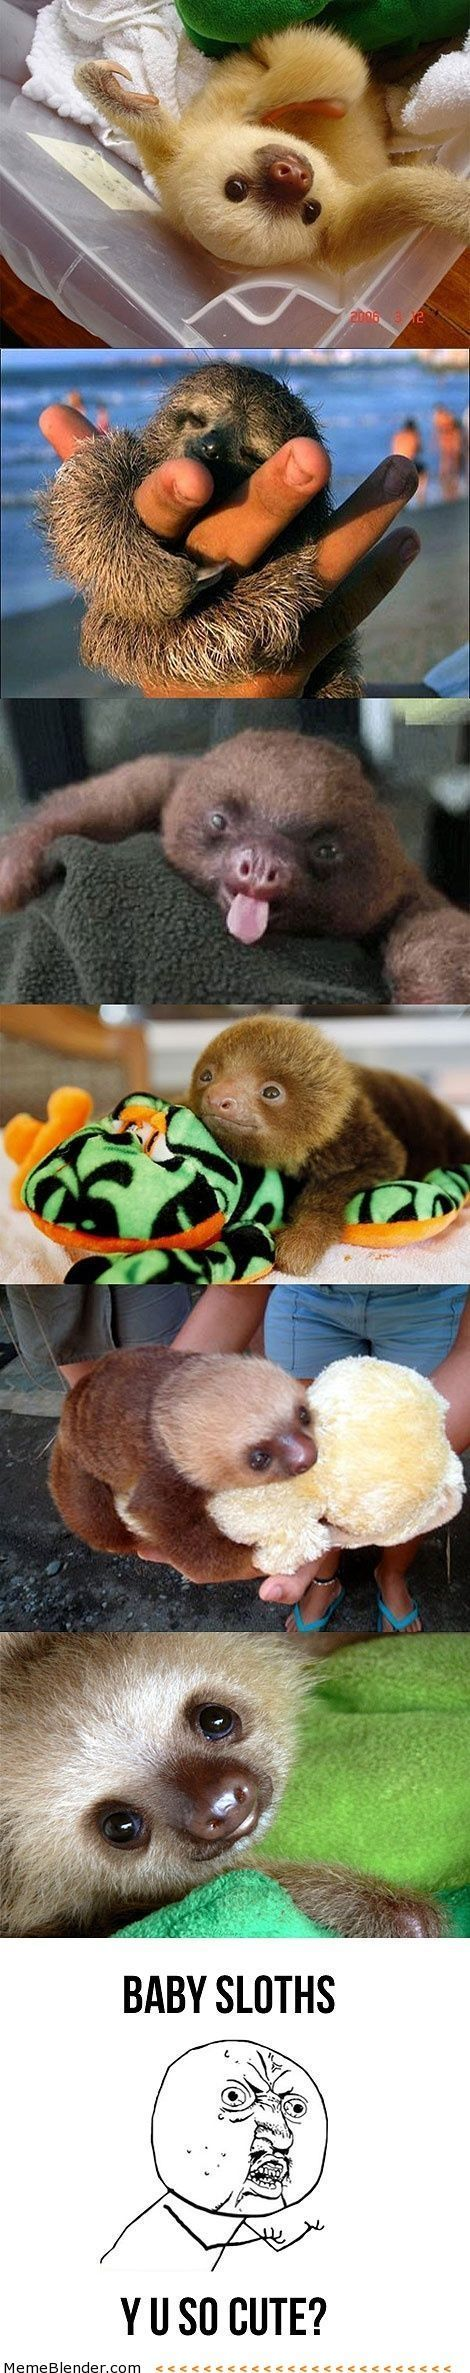 How do these cute baby sloths match up to their toys? Compare them here!: http://all-things-sloth.com/13-insanely-cute-sloth-toys-you-need-in-your-life/